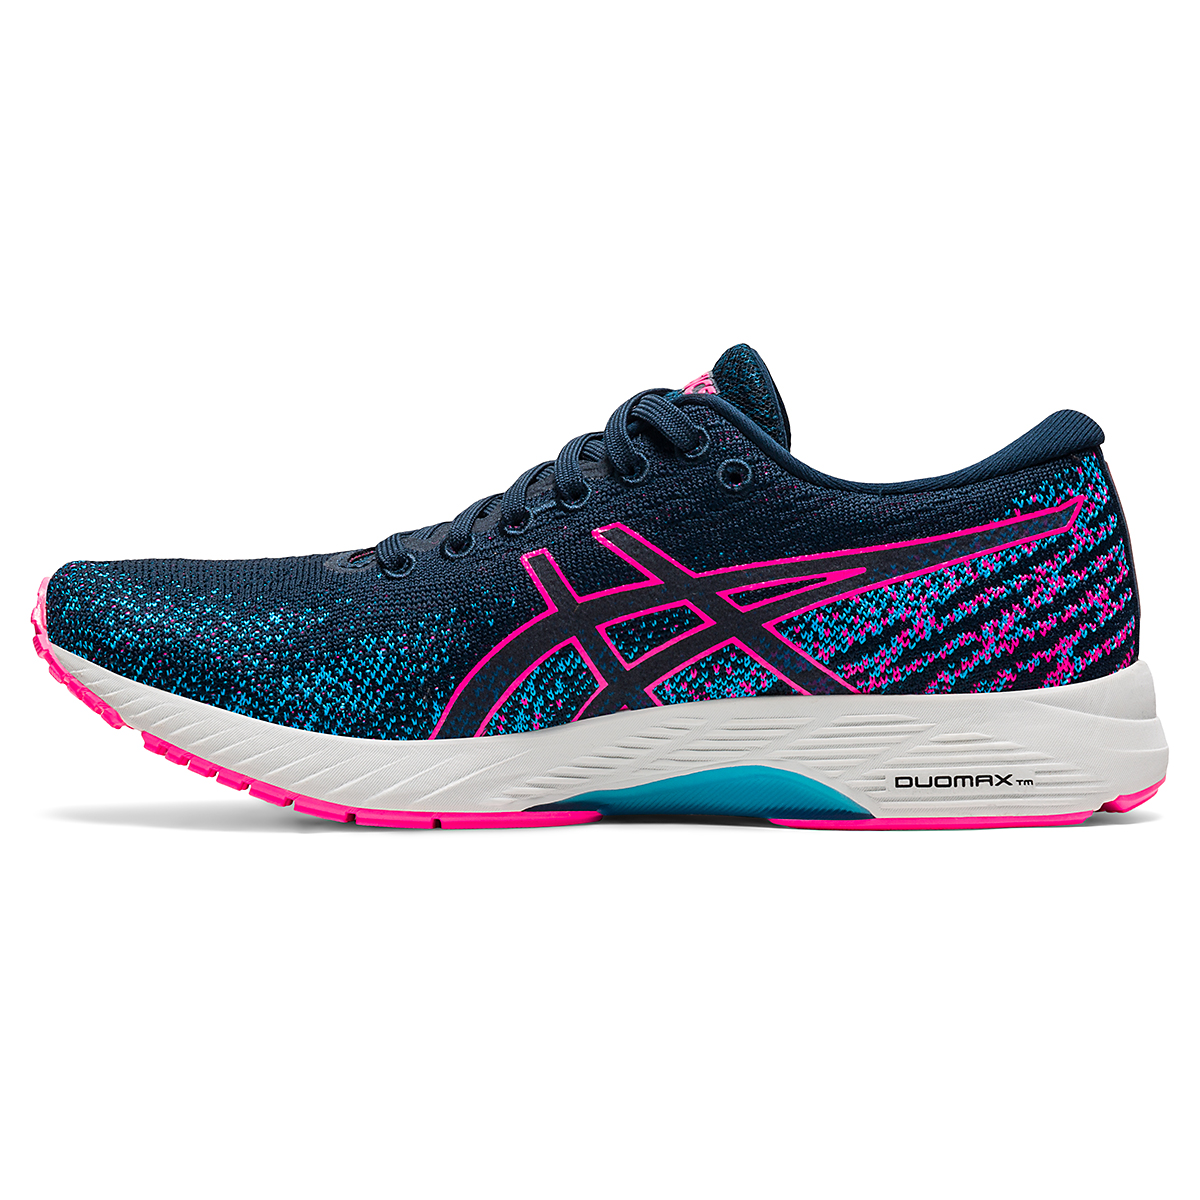 Women's Asics Gel-DS Trainer 26 Running Shoe - Color: French Blue/Hot Pink - Size: 5 - Width: Regular, French Blue/Hot Pink, large, image 2